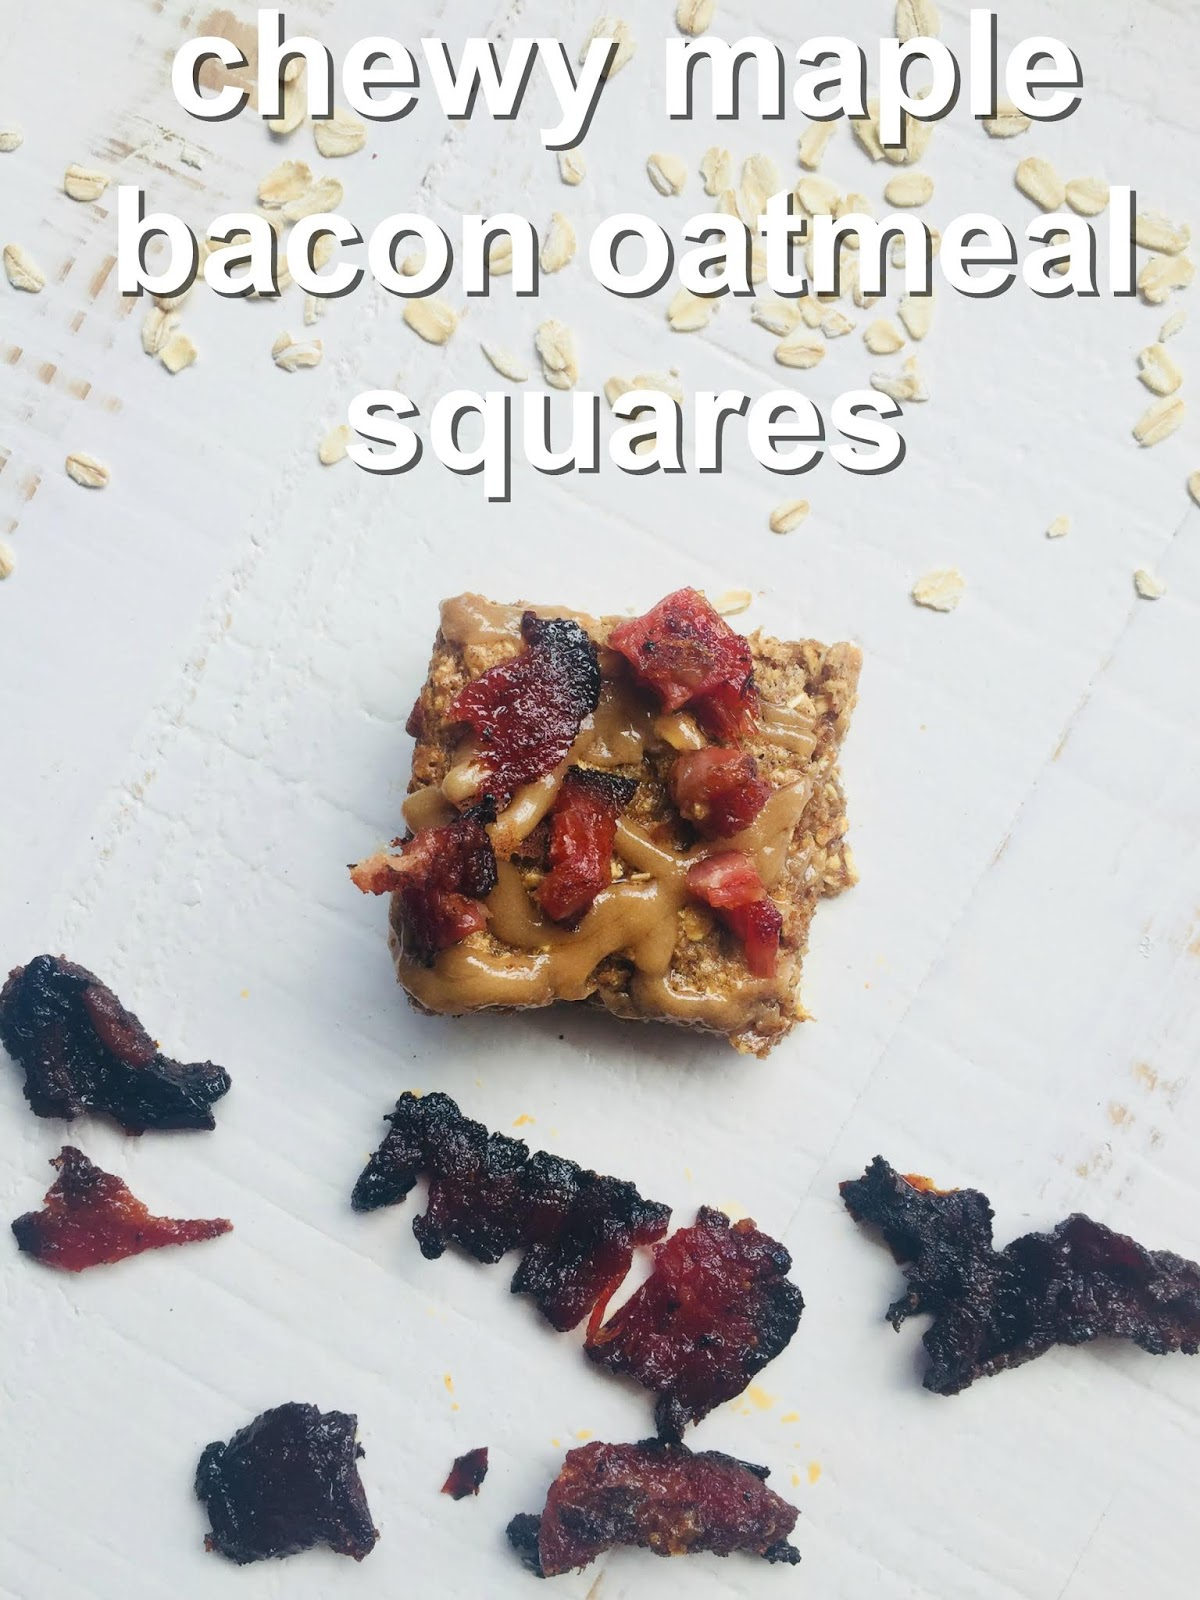 Chewy Maple Bacon Oatmeal Squares